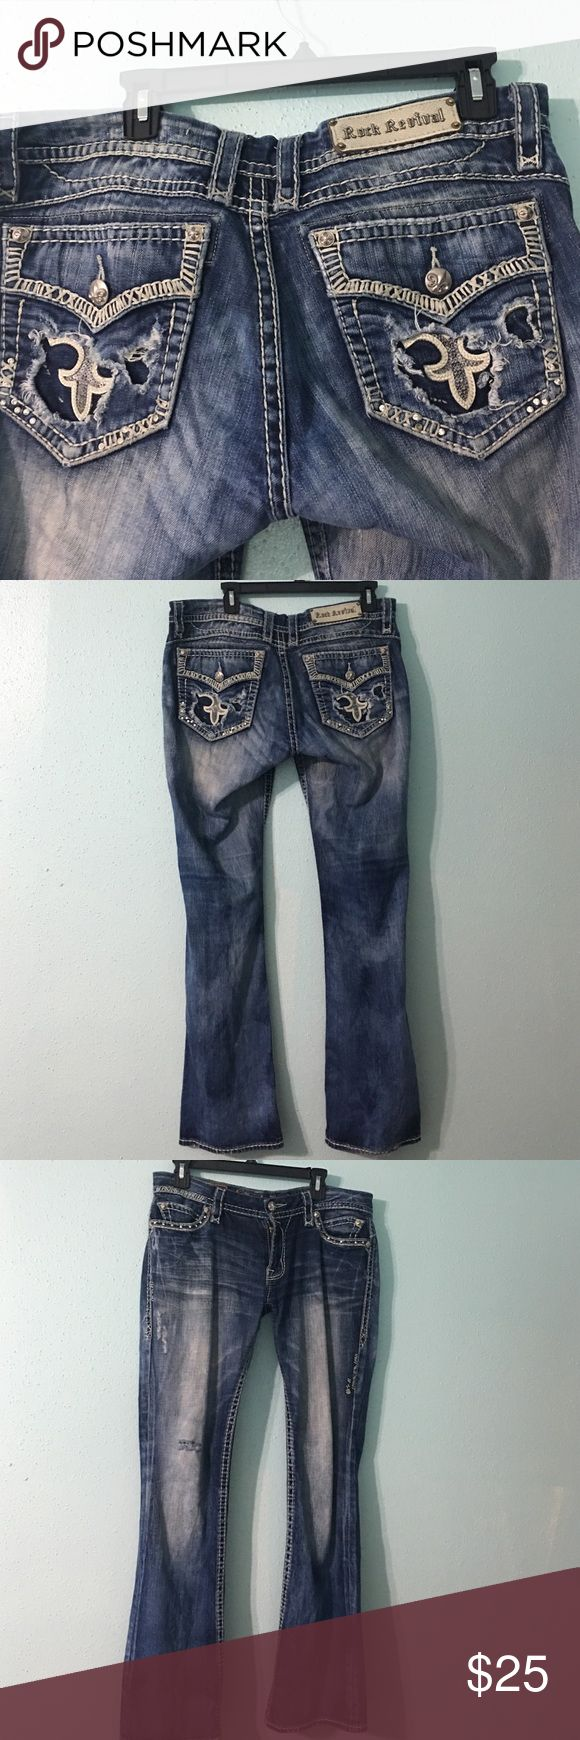 Rock revival jeans Rock revival jeans. These jeans are very worn that's why they are so cheap. When your wearing them you can't notice they have been patched. The inseam is 32 inches and so is the size. Rock Revival Jeans Boot Cut